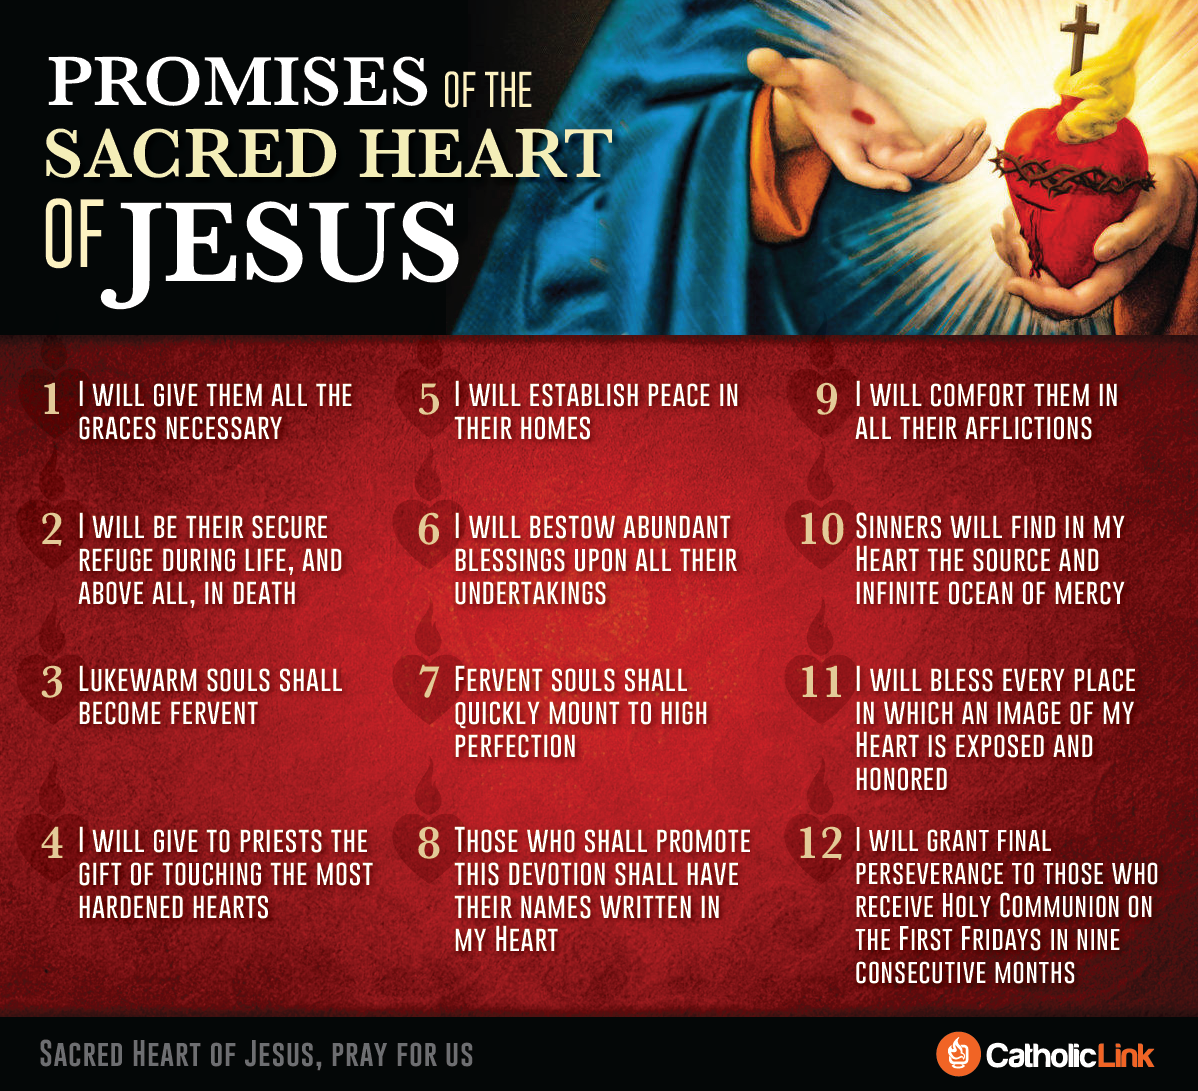 12 promises of the sacred heart